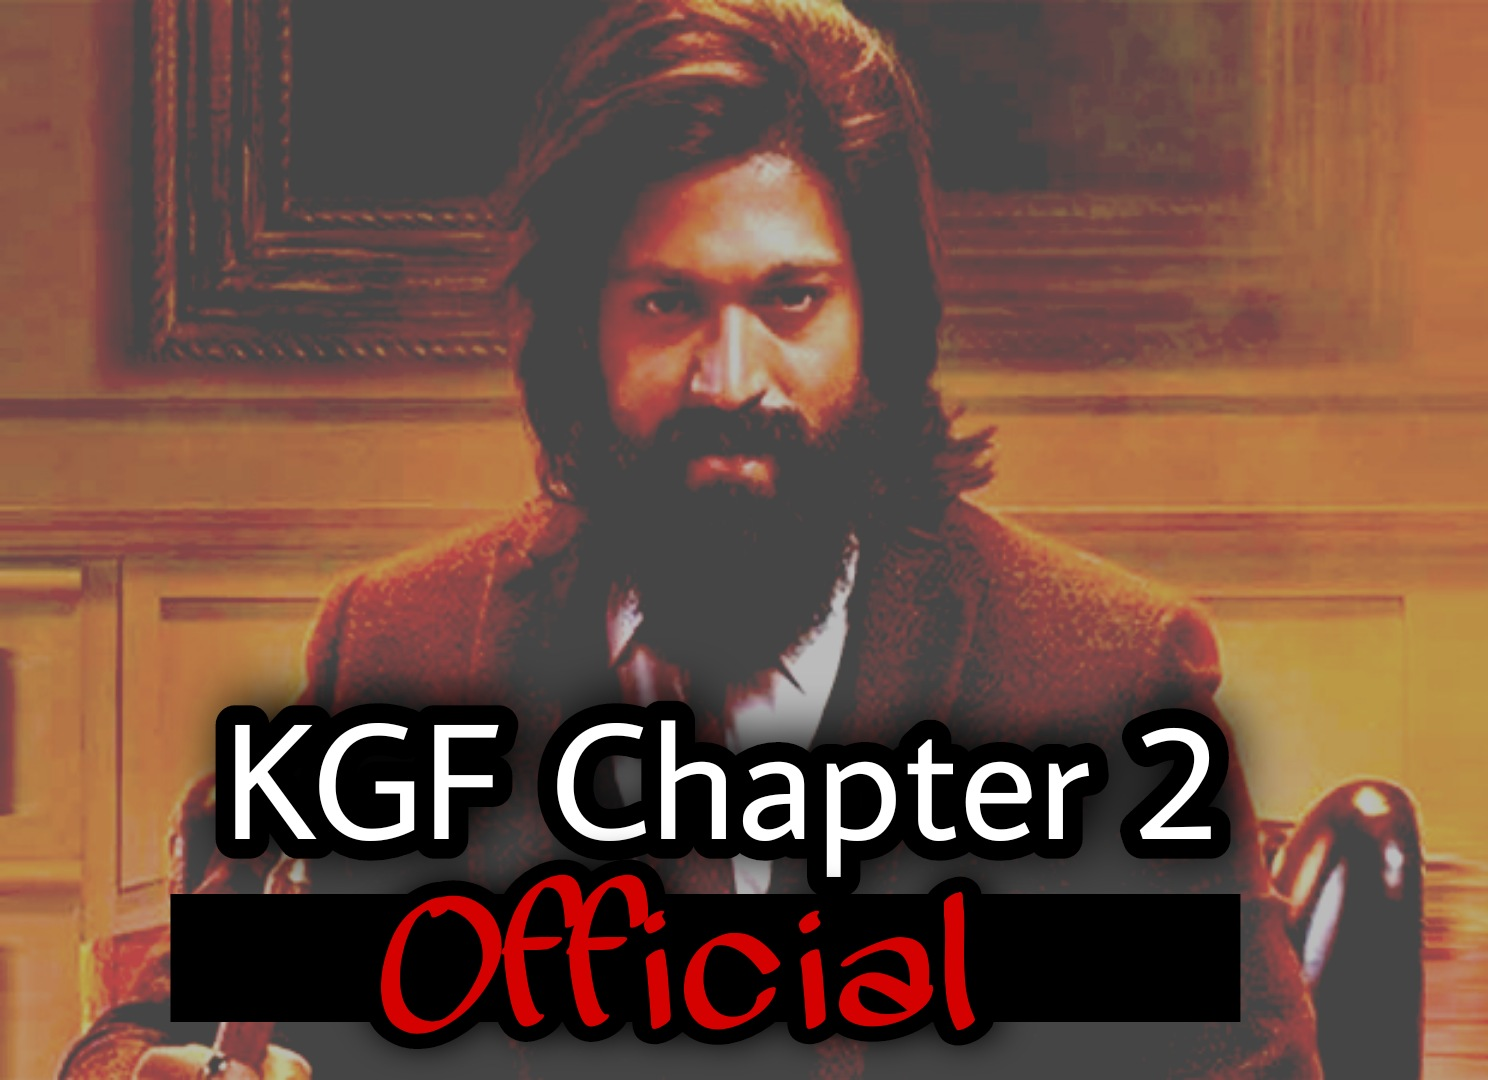 Where can I see KGF chapter 2? |  How To Watch Kgf Chapter 2 movie